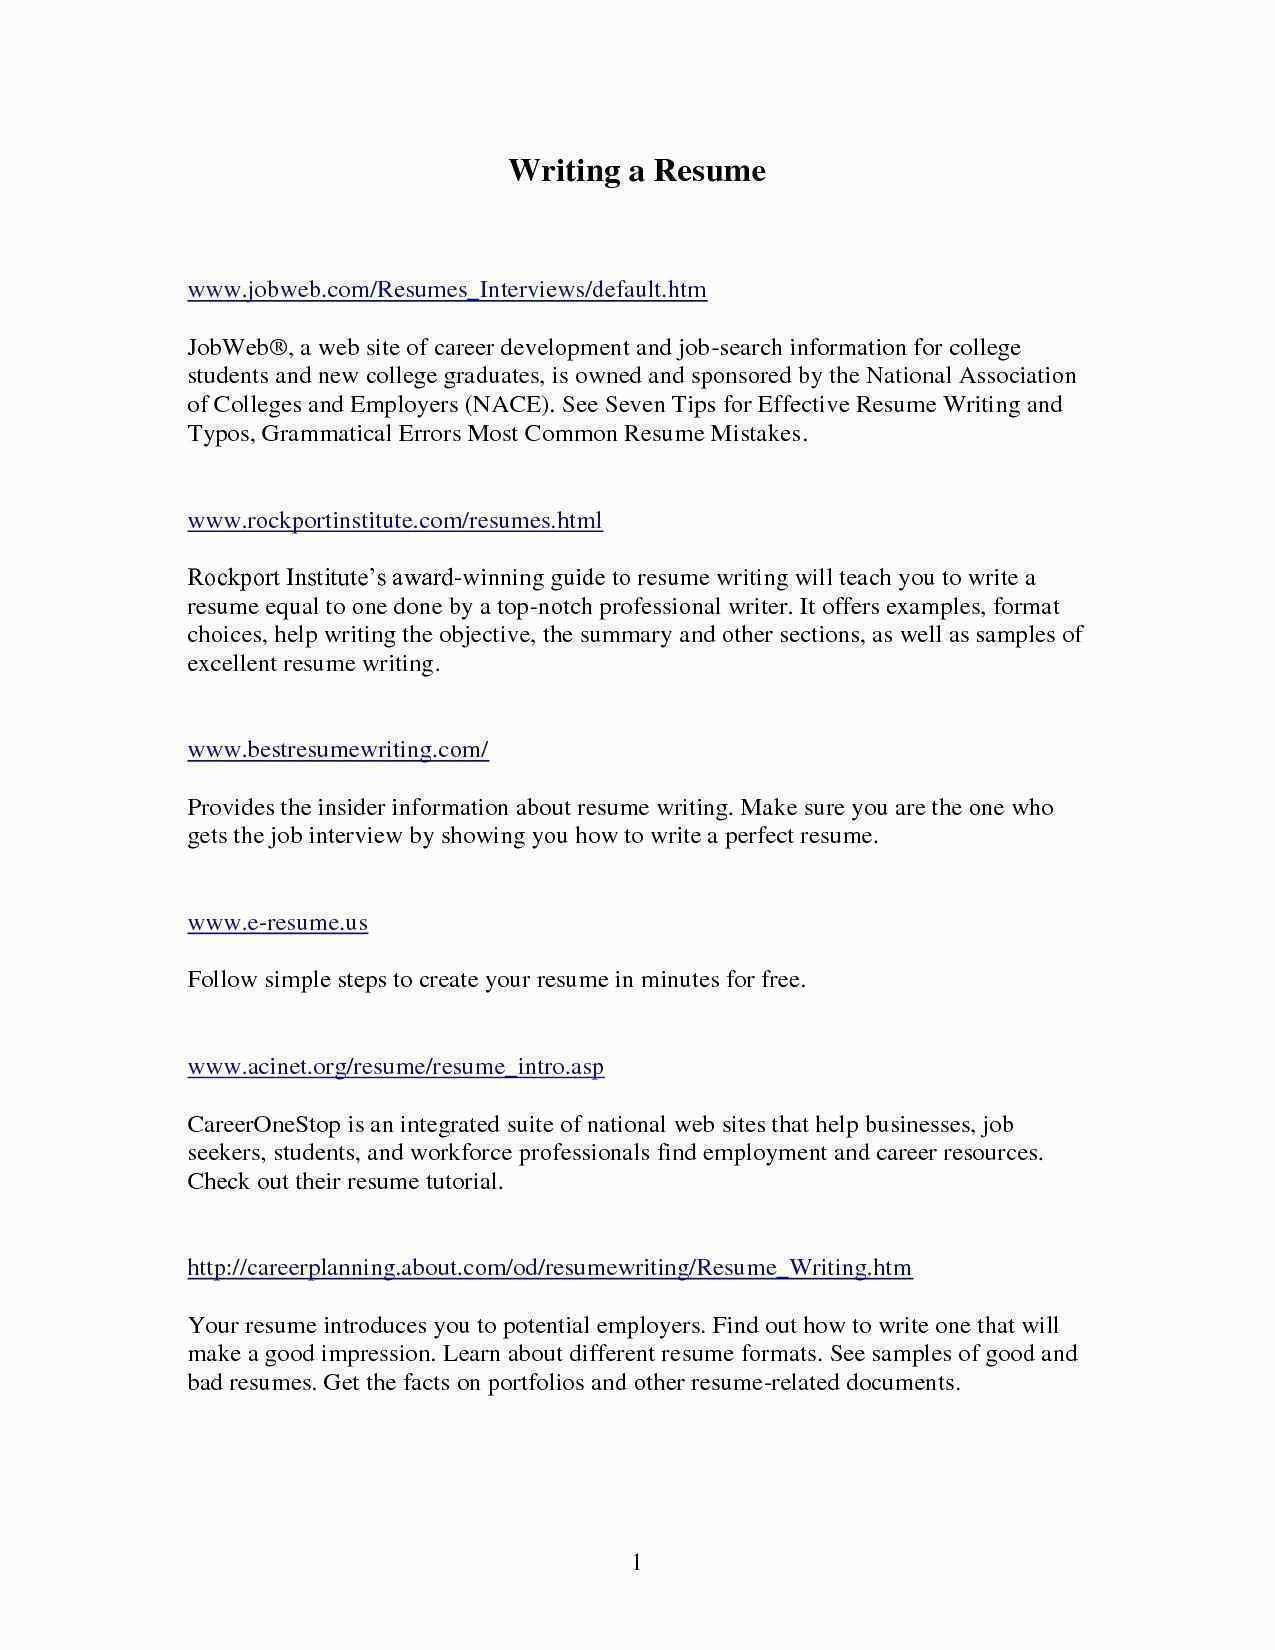 College athletic Resume Template - Sports Resume Best 46 Beautiful Sample Sports Resume Great Resume